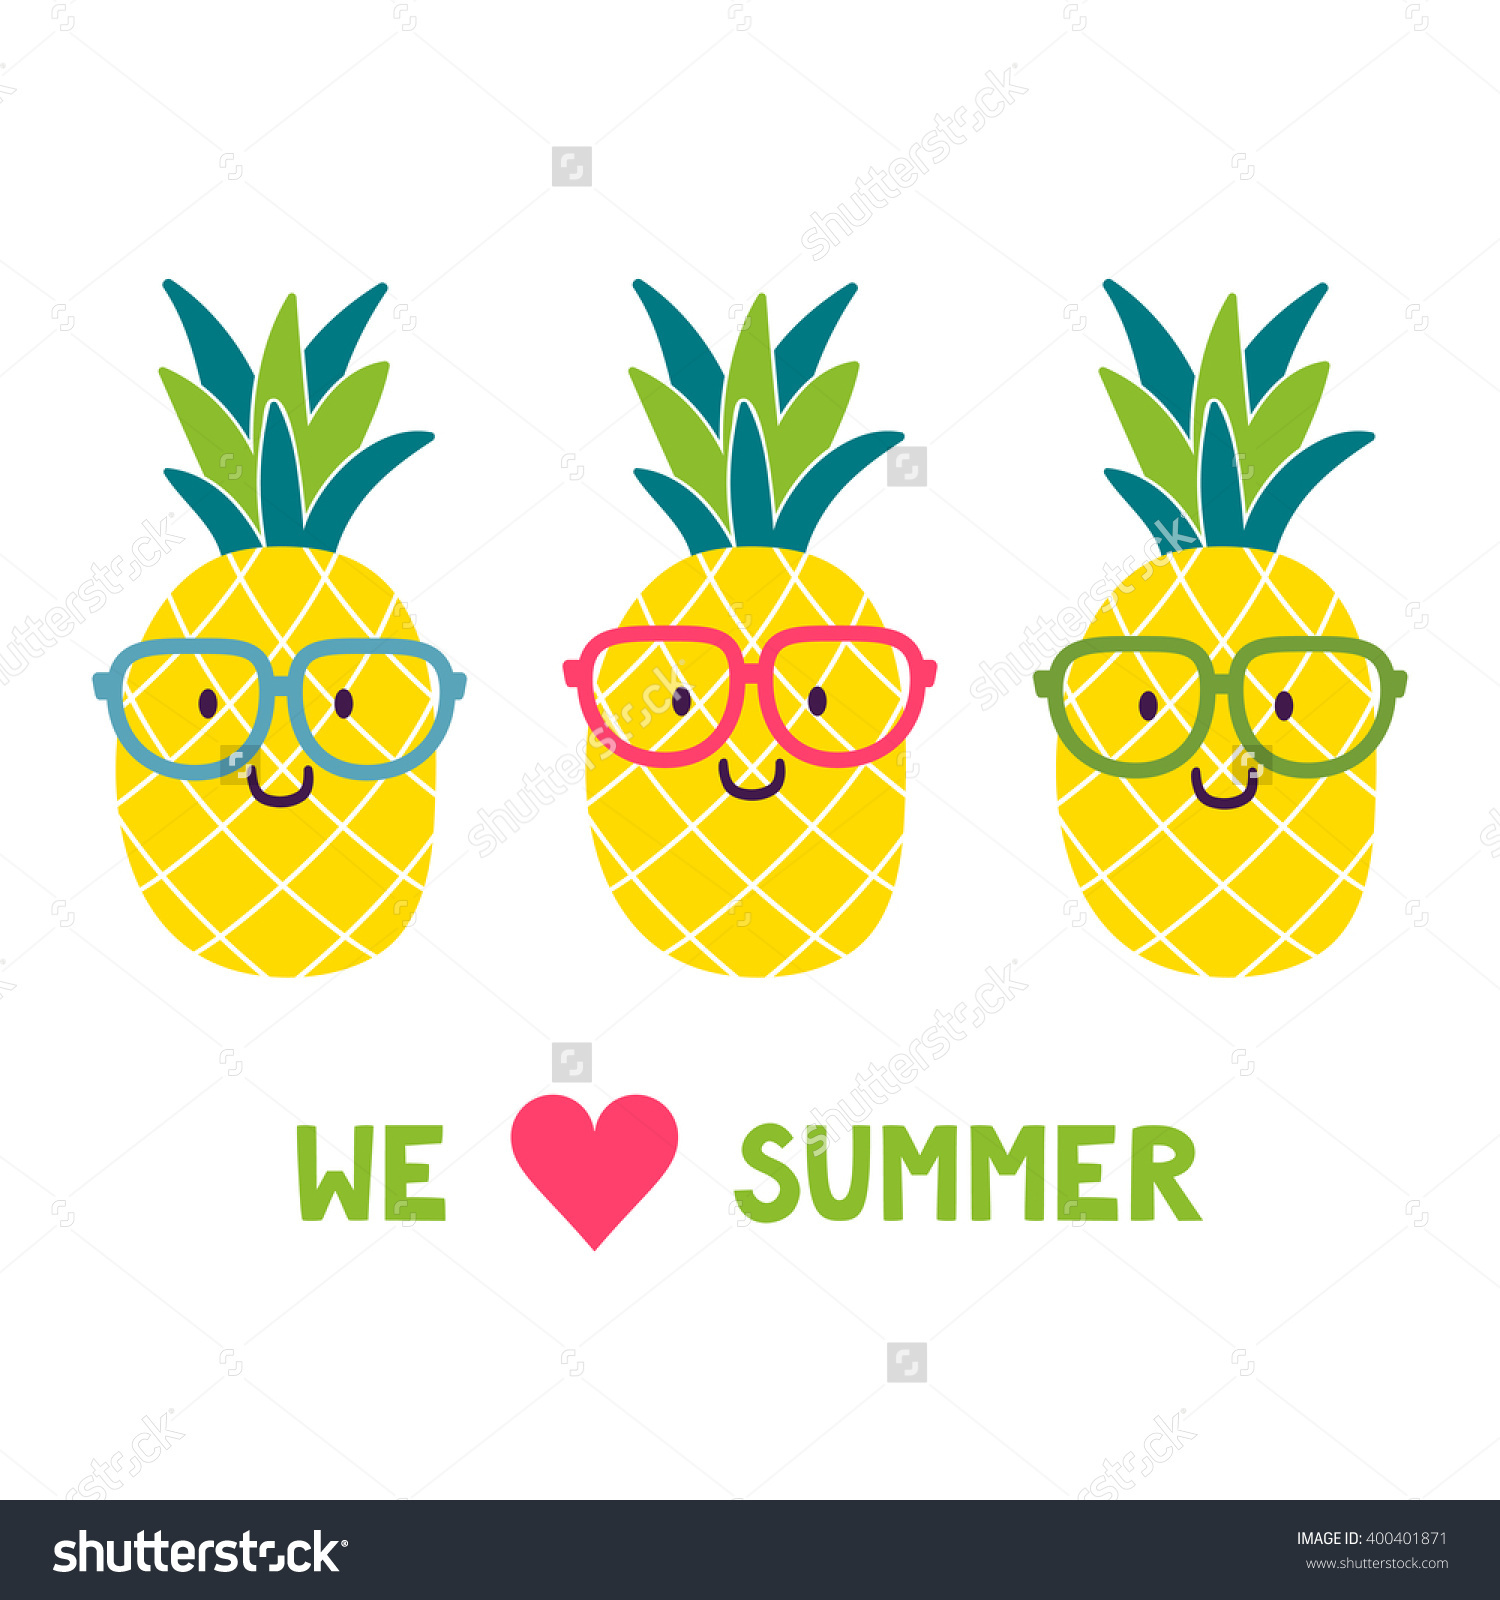 143 Summertime free clipart.